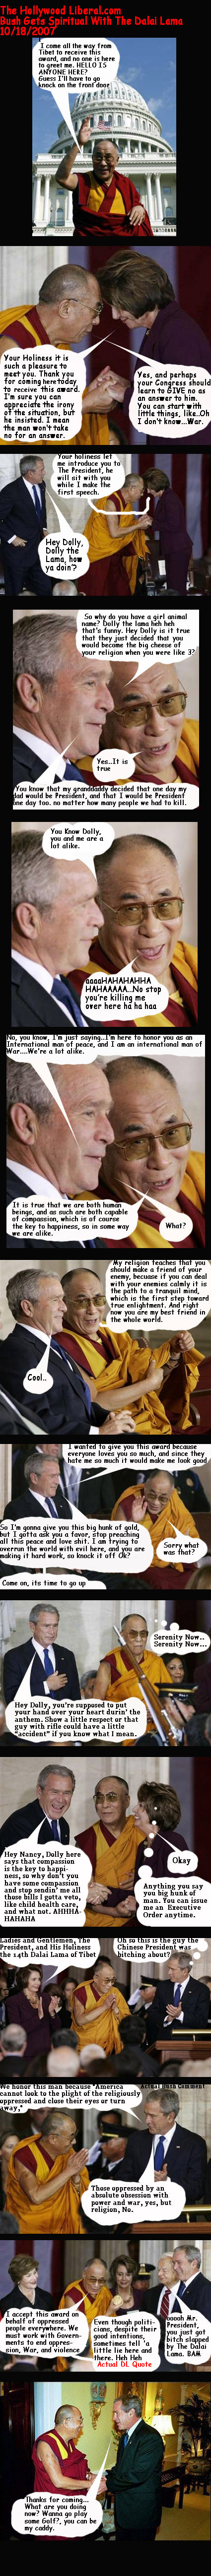 Bush gives medal to Dalai Lama